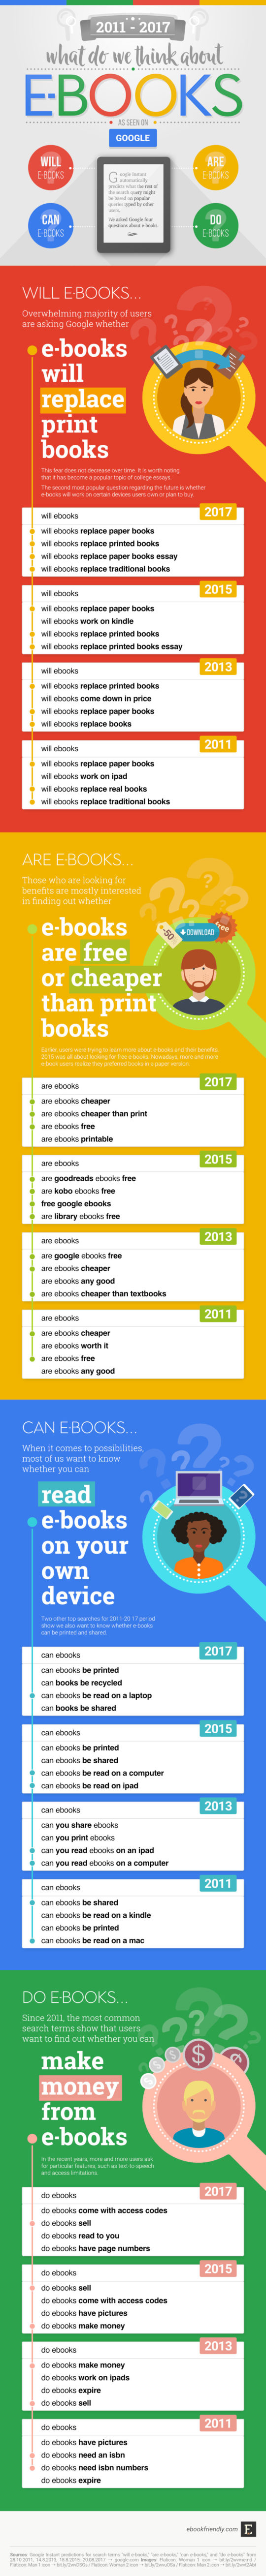 What do we think about ebooks, as seen on Google: 2011 - 2017 #infographic